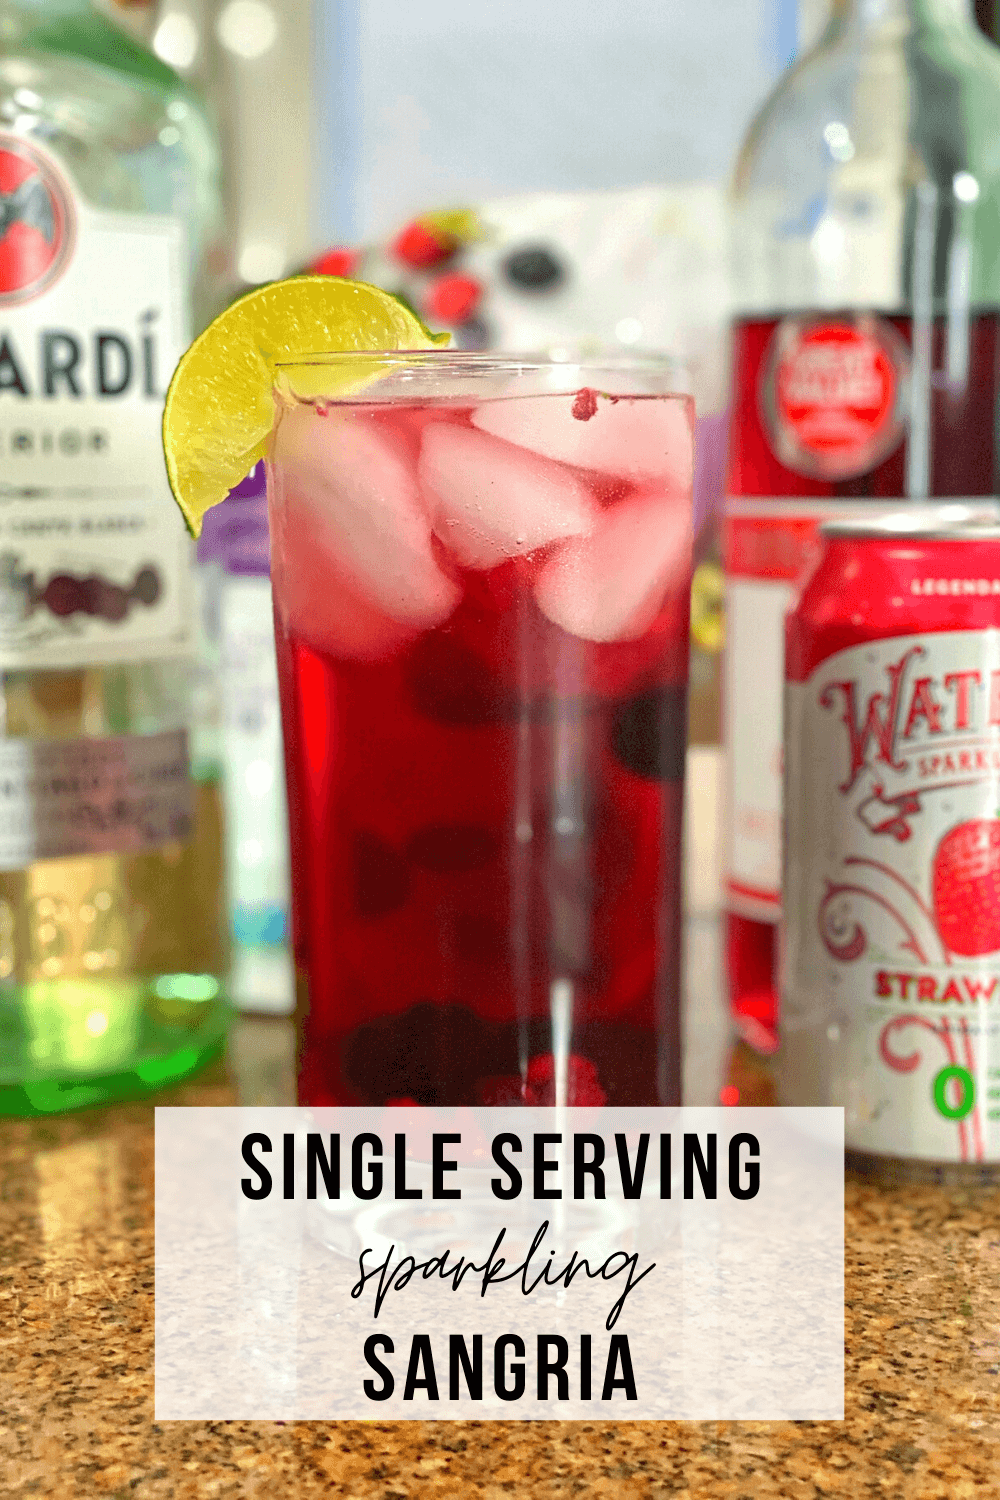 Single Serving Sparkling Sangria | www.thevegasmom.com